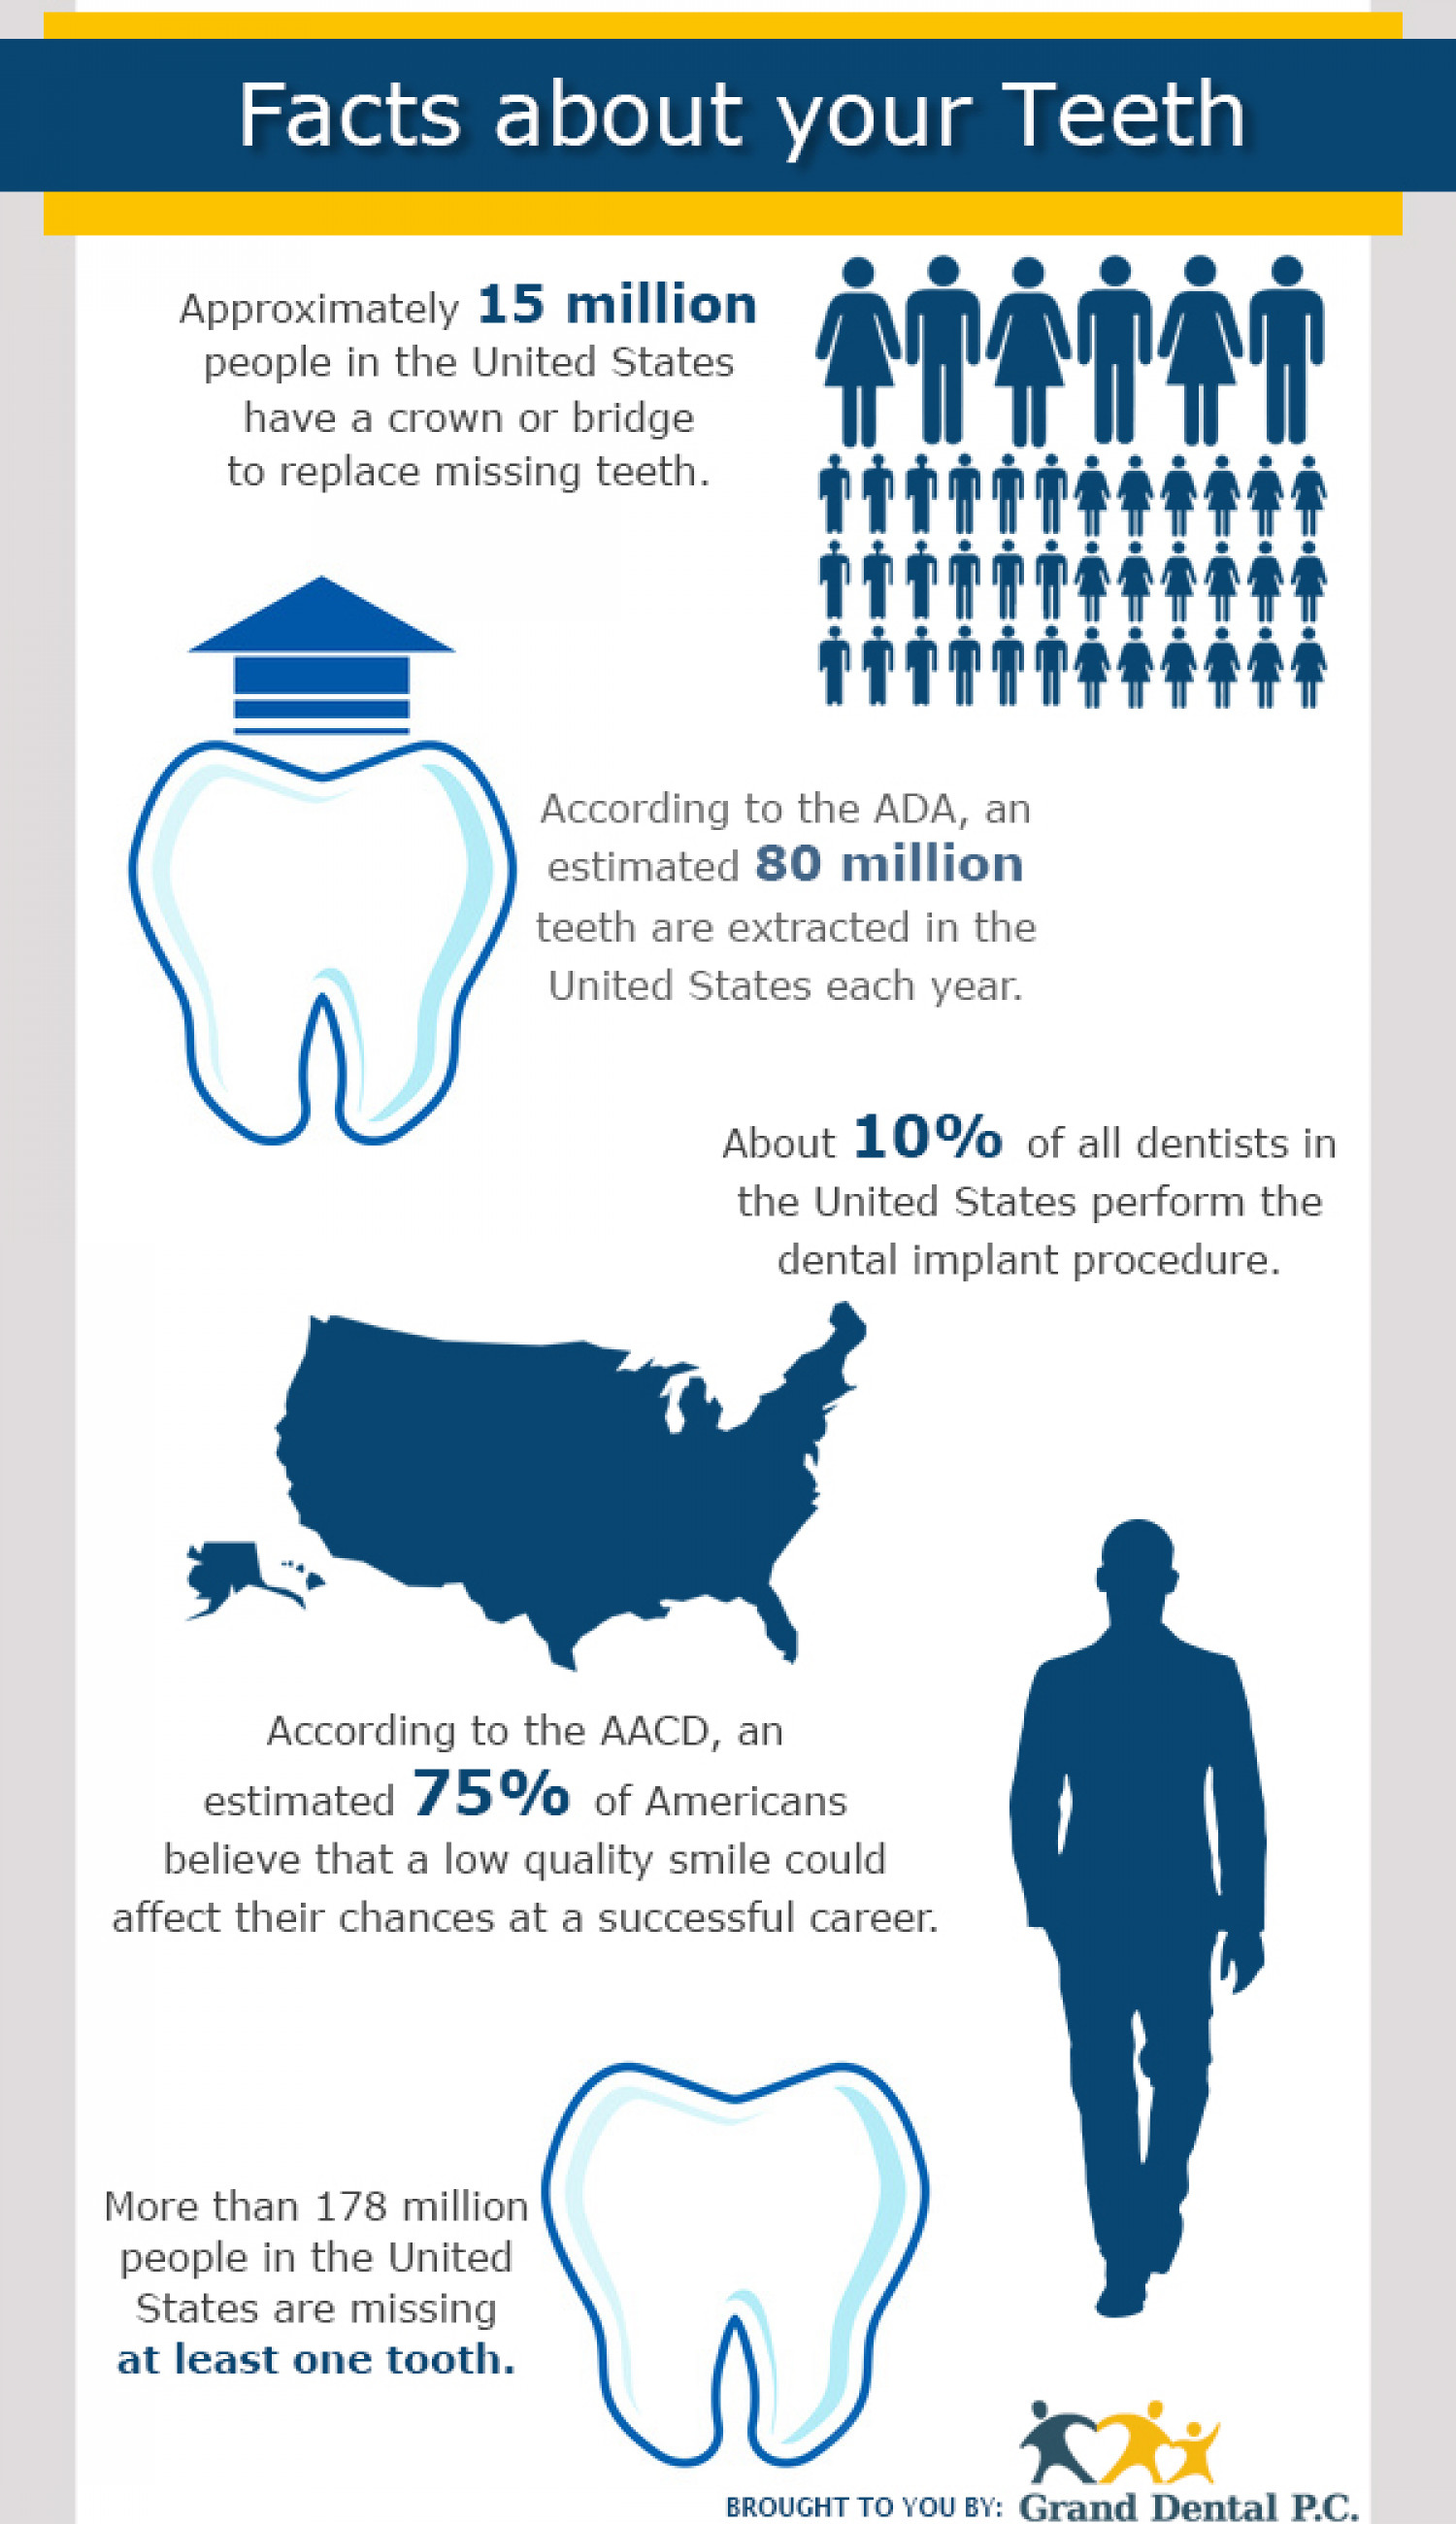 Facts About Your Teeth Visual Ly